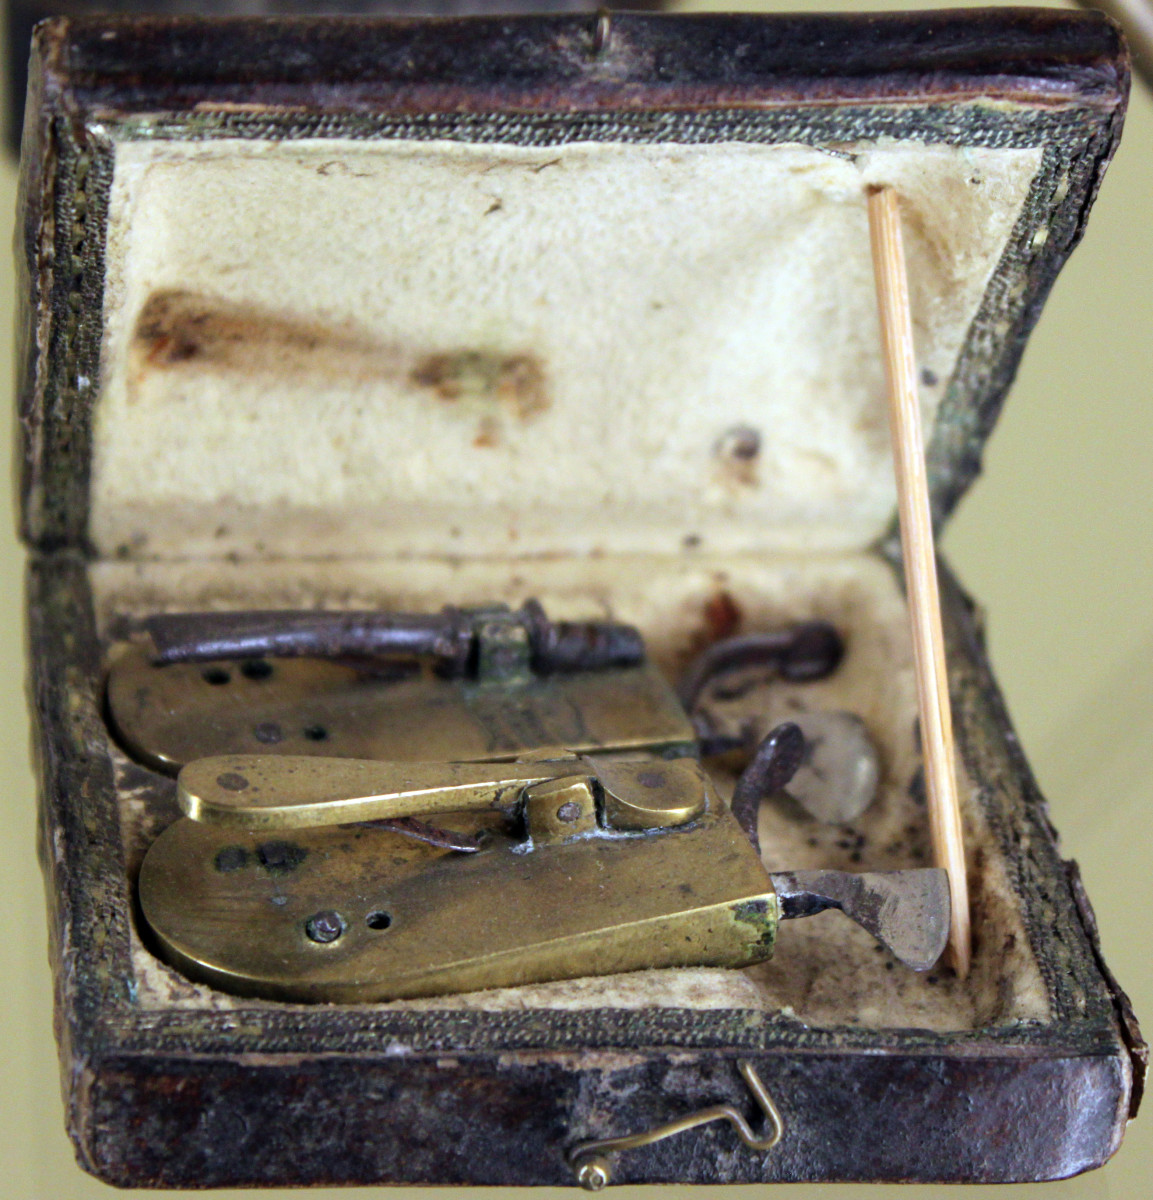 Blood-letting Kit of a Barber Surgeon - Men frequently had the dual-job of cutting hair and curing minor ailments in the Middle Ages